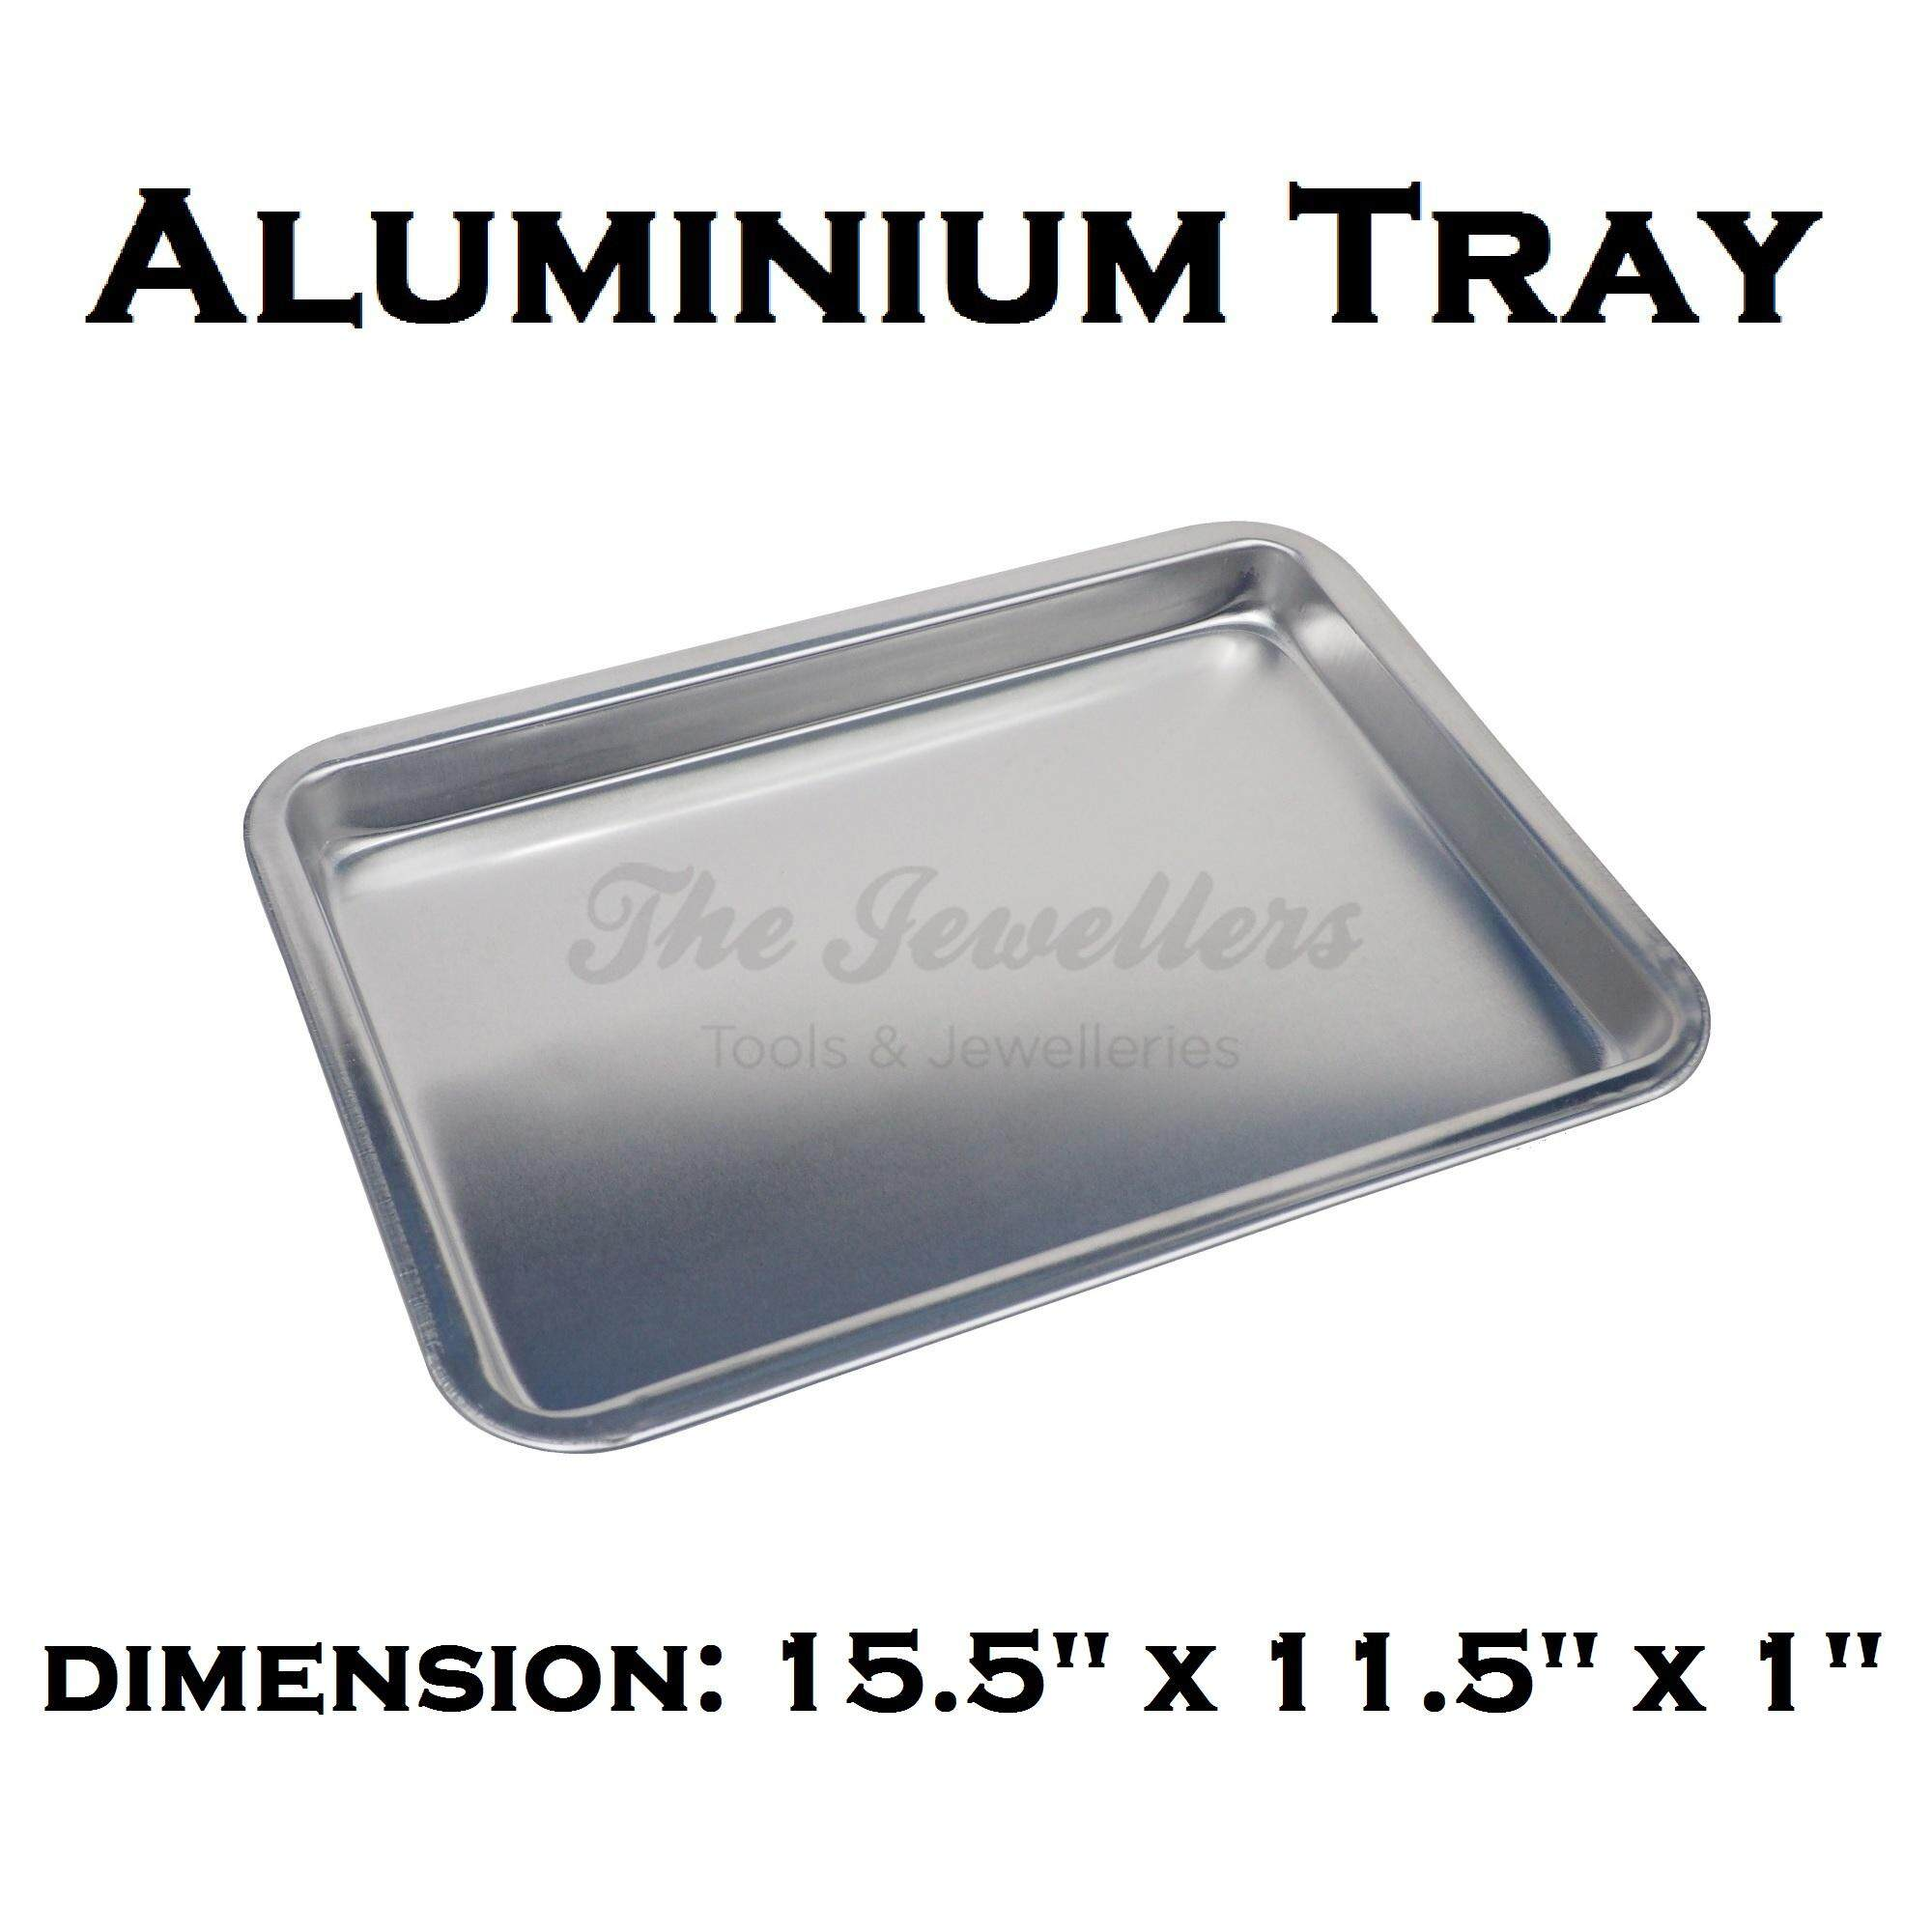 """Aluminium Tray Bakeware Oven Sheet, Baking Pan Tray for Cookies, Pizza, and Cakes Dimension: 15.5"""" x 11.5"""" x 1"""" inch"""